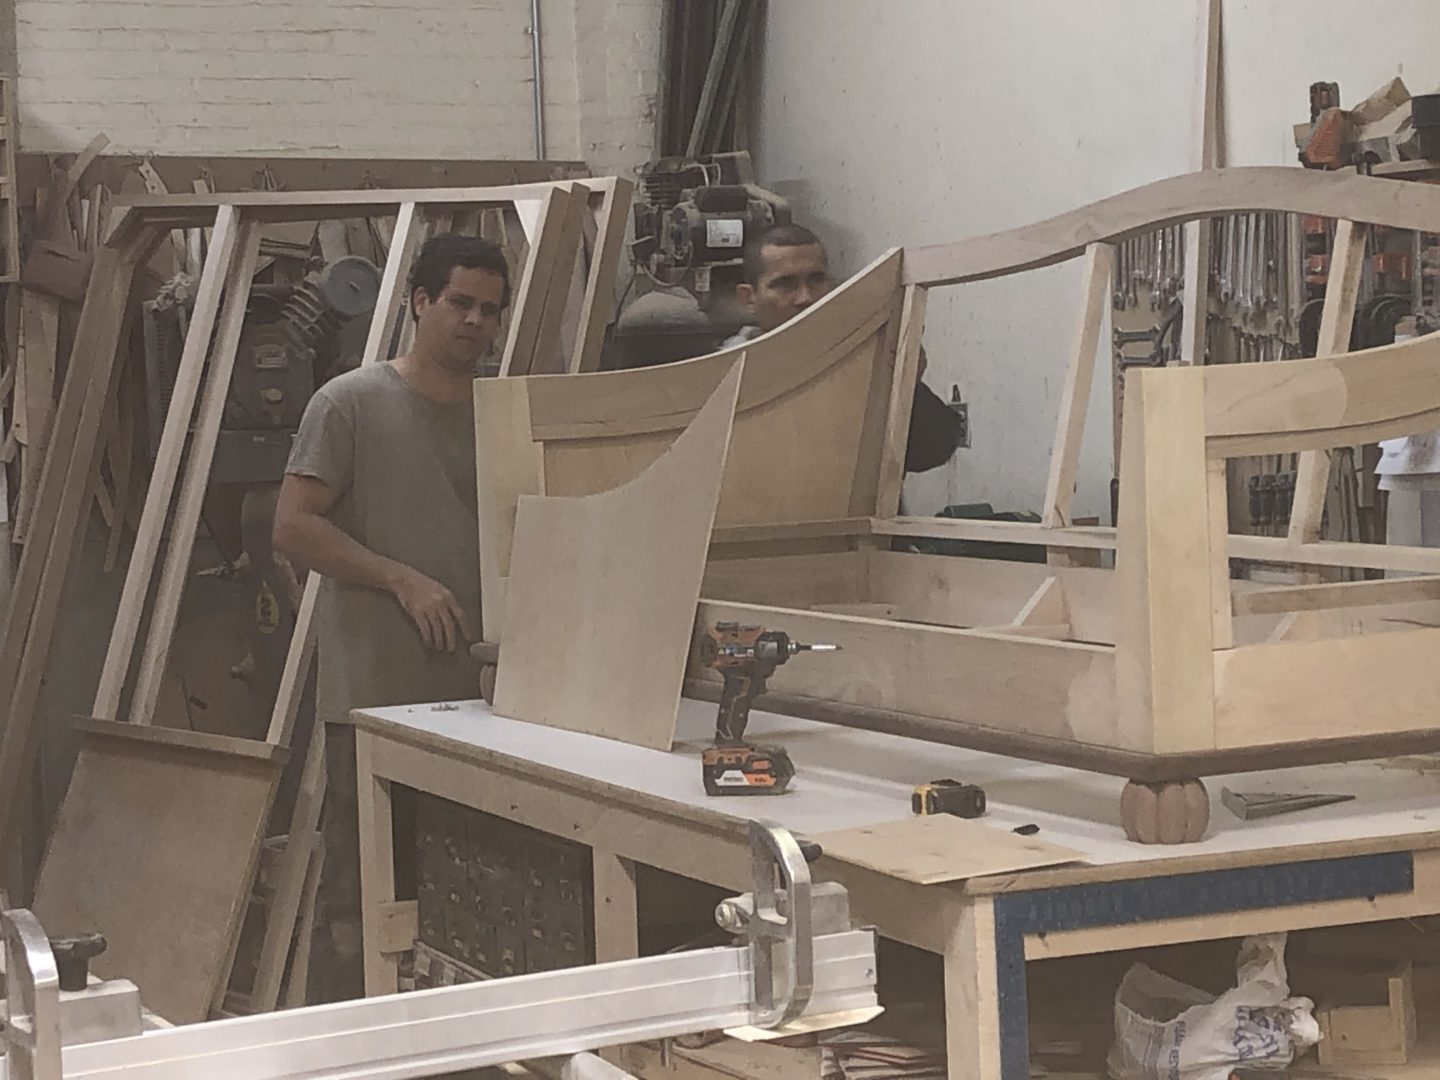 A man working with plywood